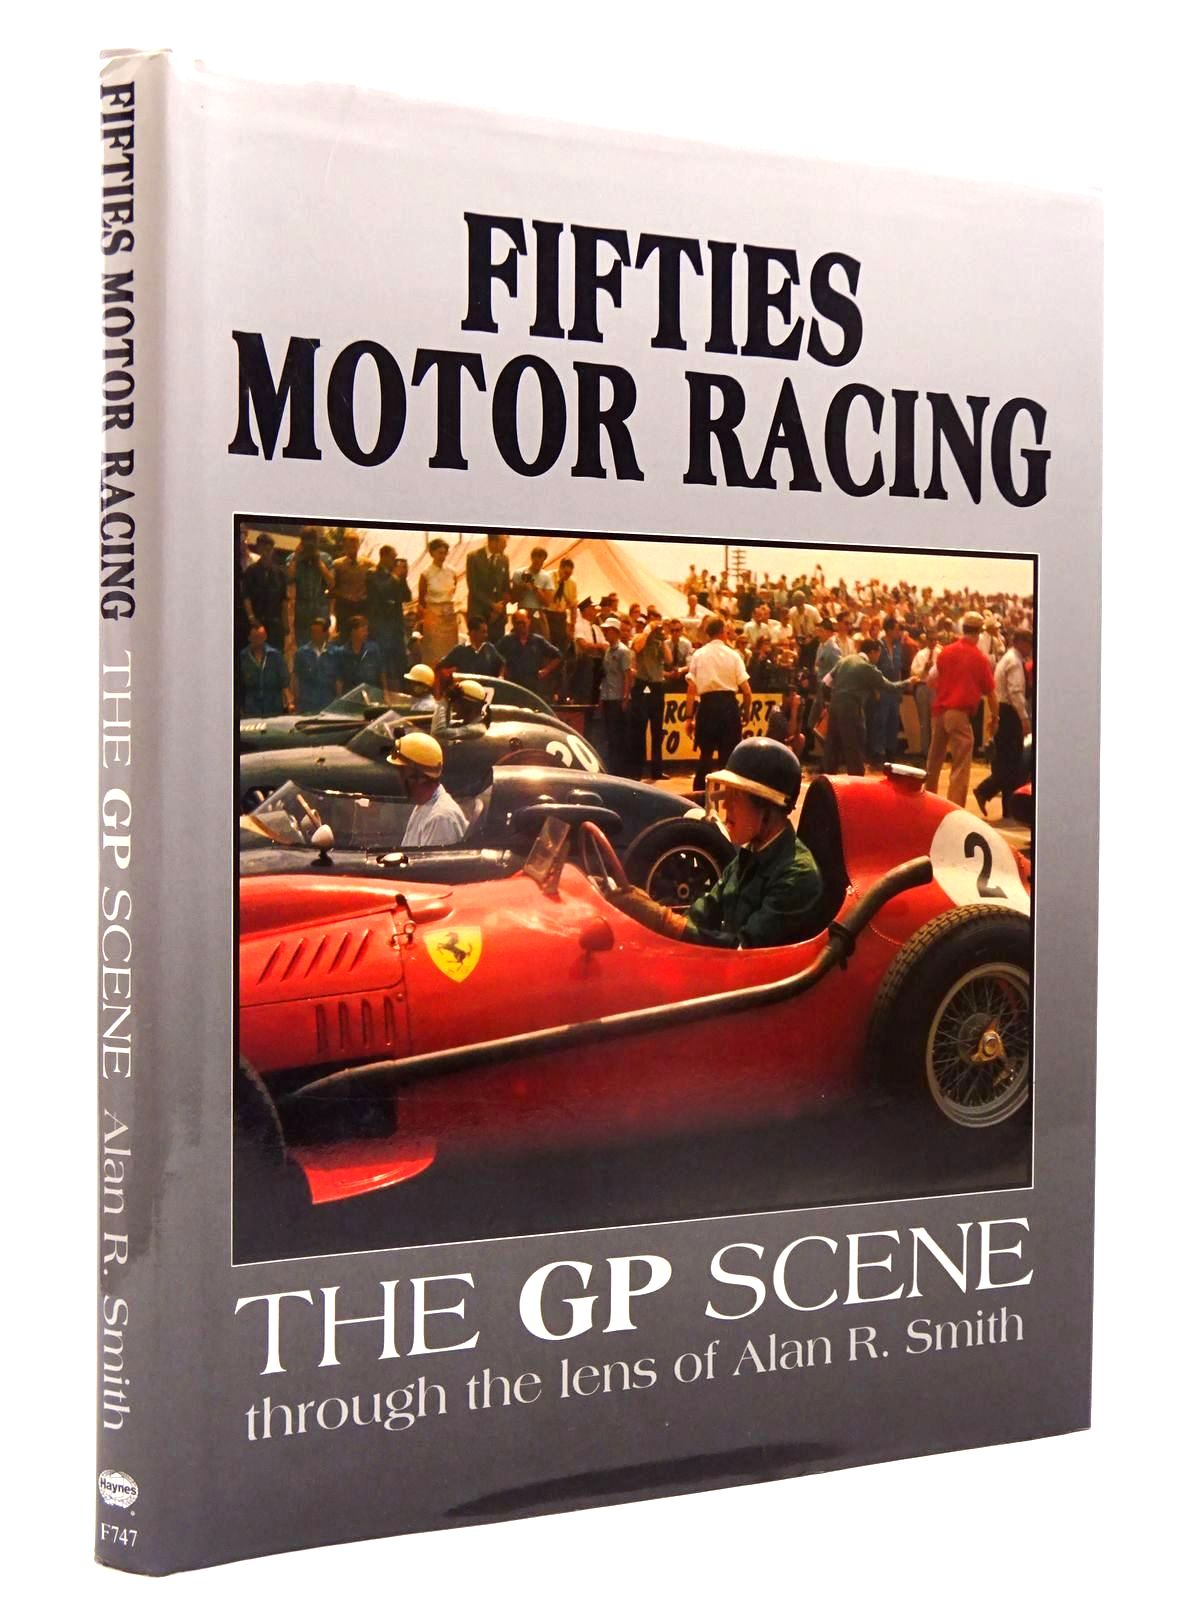 Photo of FIFTIES MOTOR RACING written by Smith, Alan R. published by Haynes Publishing Group, Foulis (STOCK CODE: 2130077)  for sale by Stella & Rose's Books